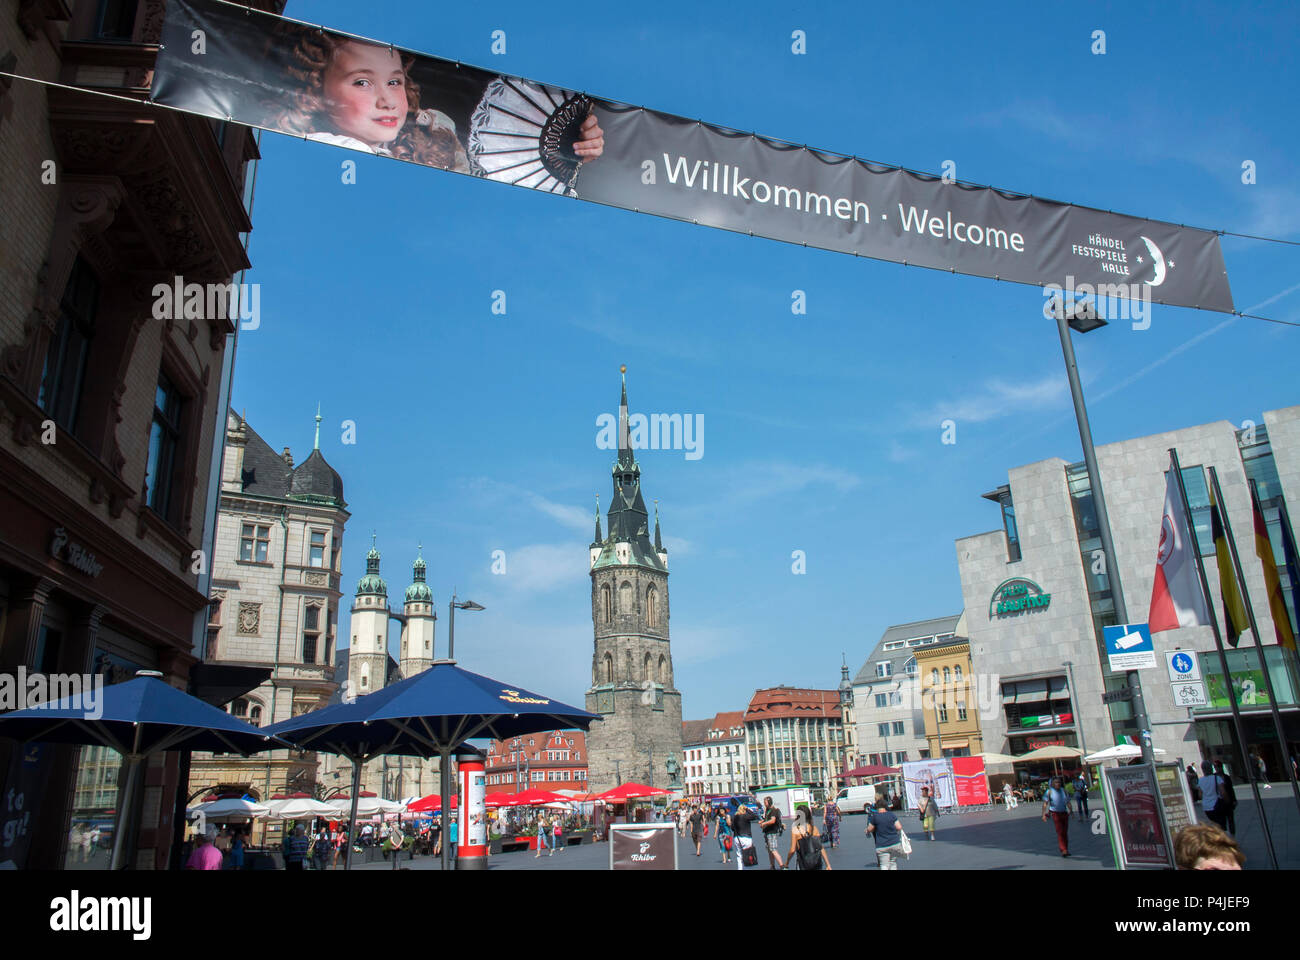 The Market Square in Halle {Saale} advertising the Handel Festival . The place of Handel's birth. - Stock Image